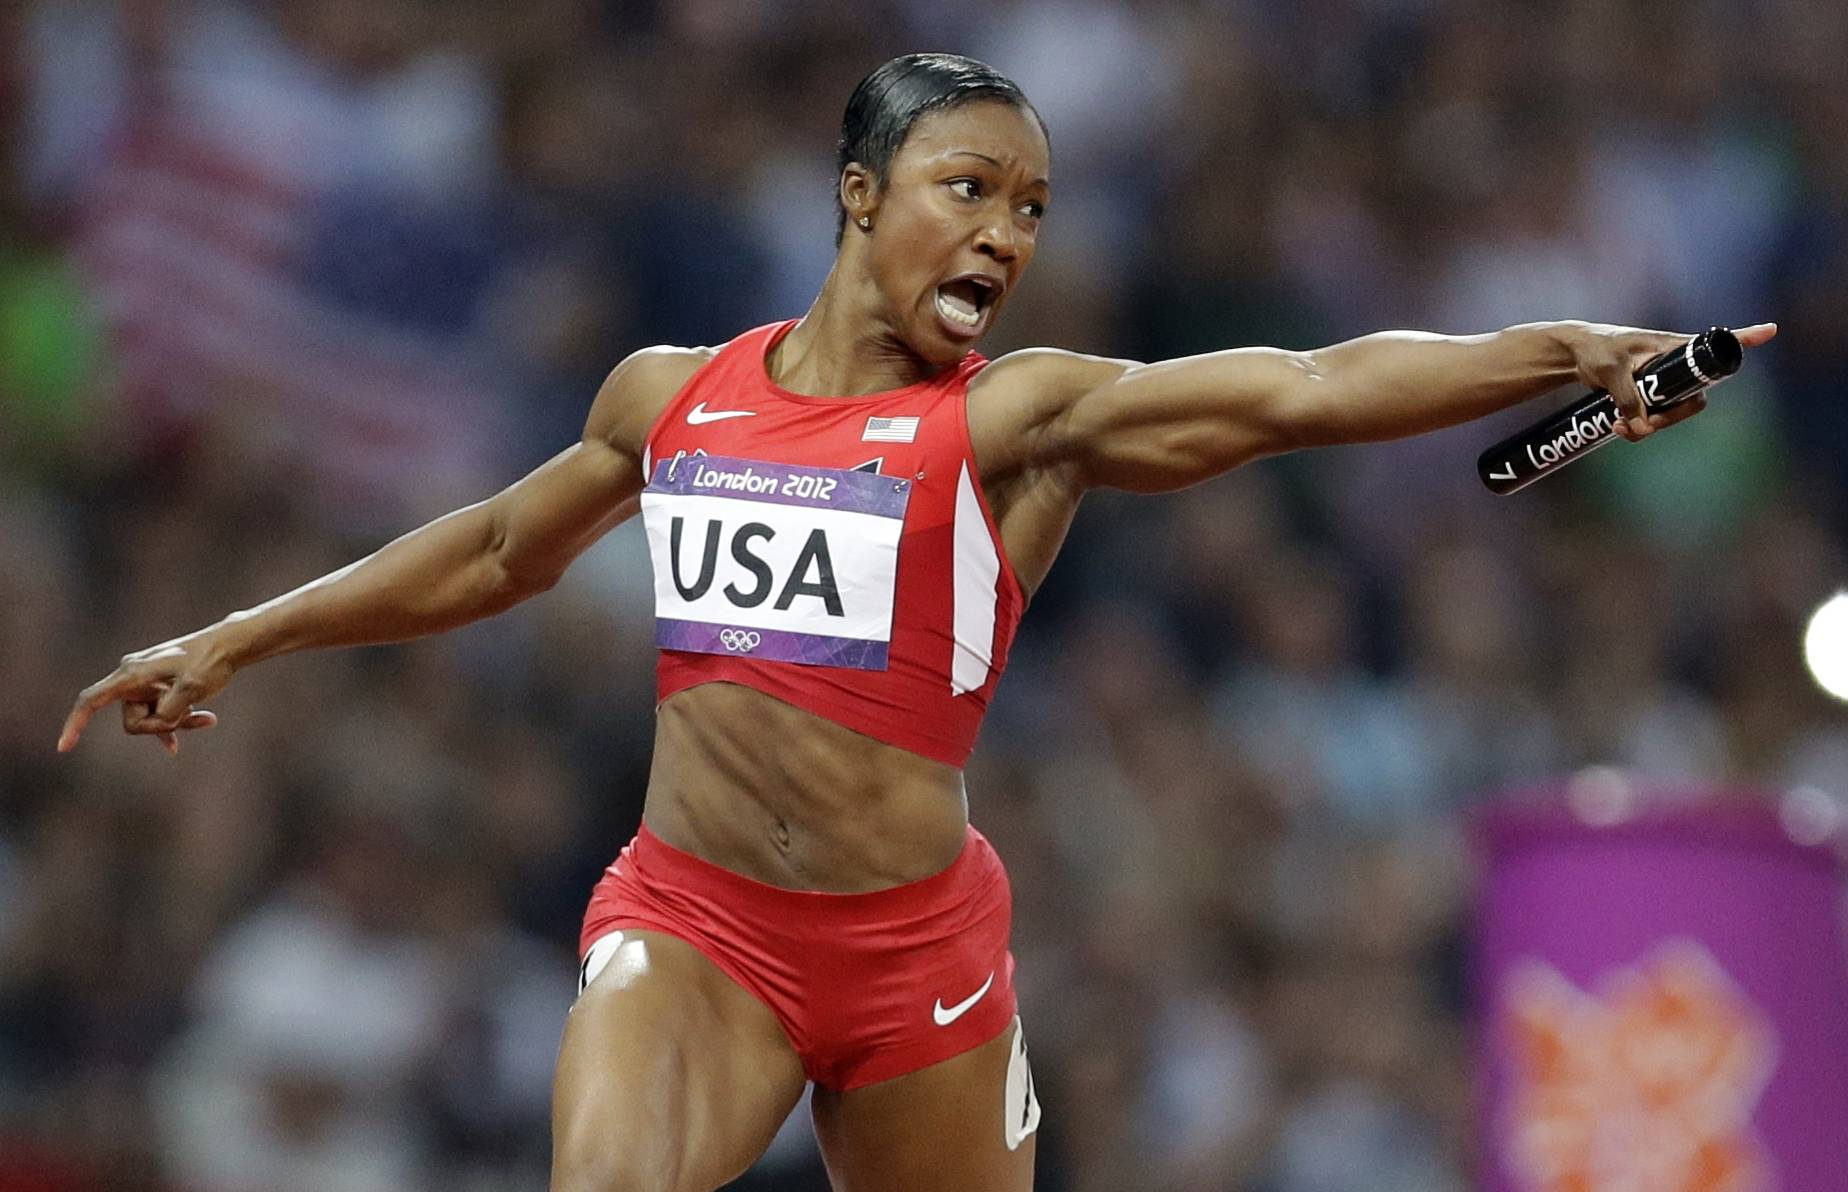 United States sprinter Carmelita Jeter reacts Friday as she crosses the finish line to win the women's 4x 100-meter relay. The United States relay team set a new world record with a time of 40.82 seconds.